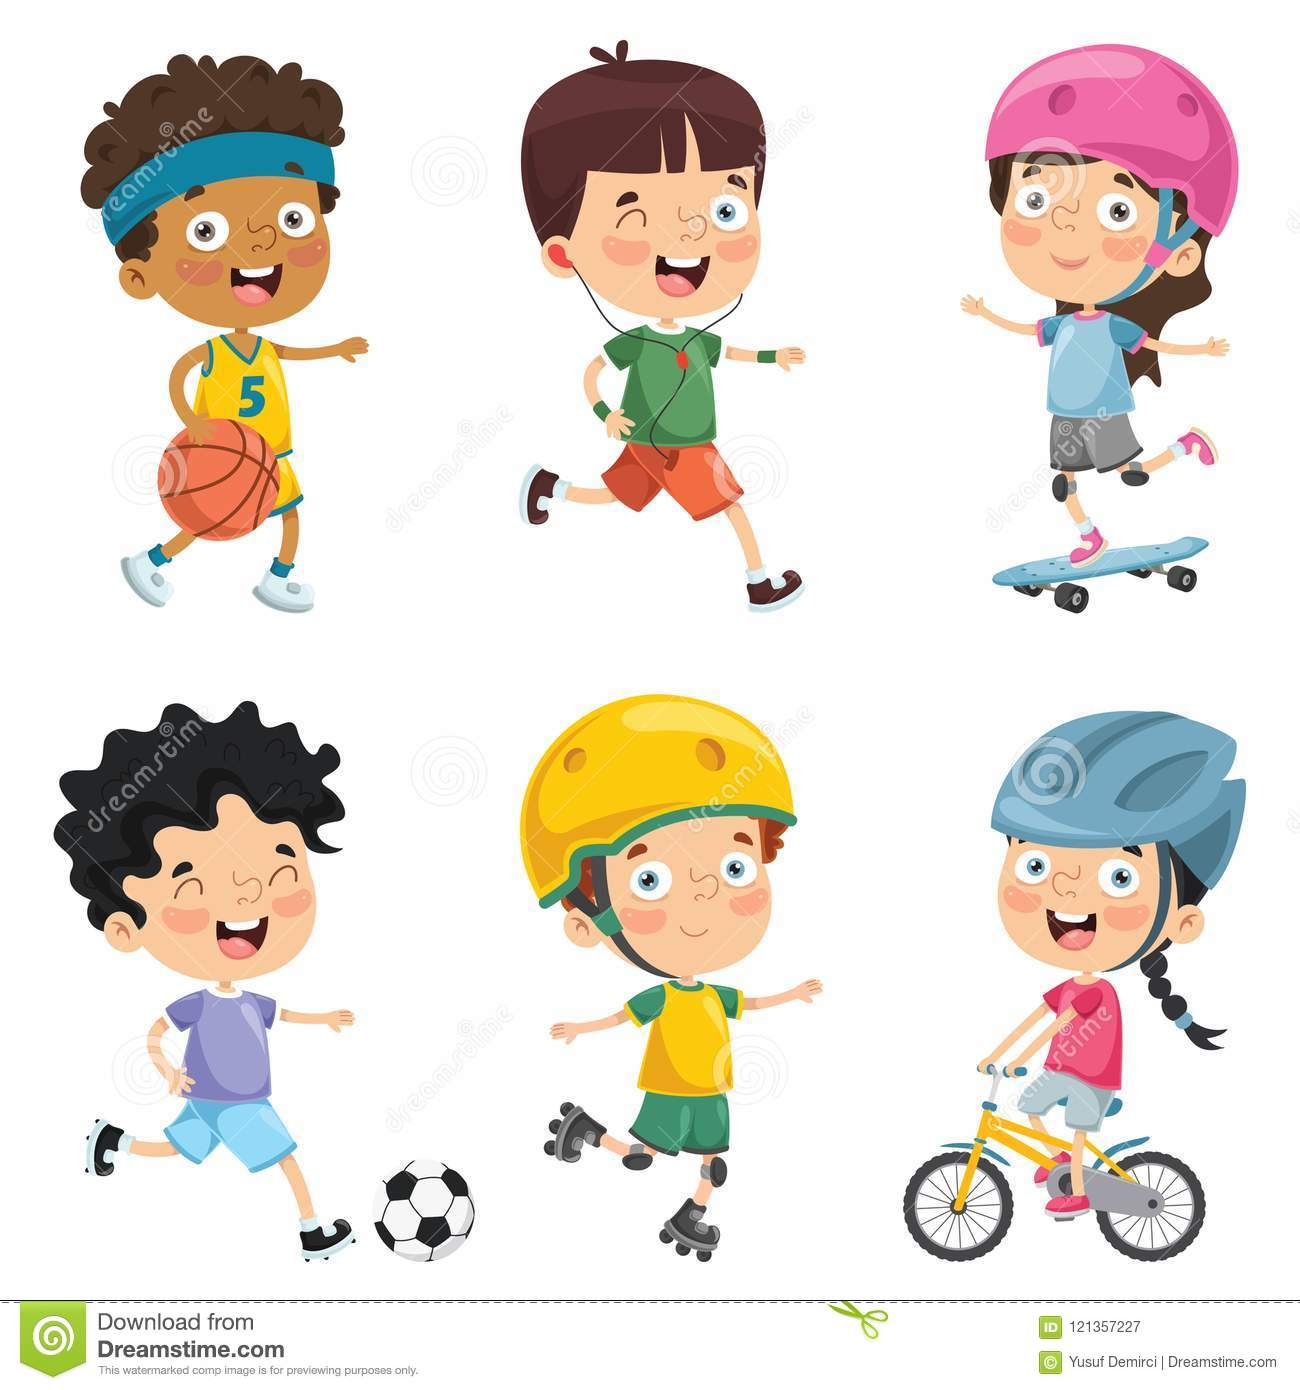 Group Friends Playing Basketball Stock Illustrations 44 Group Friends Playing Basketball Stock Illustrations Vectors Clipart Dreamstime